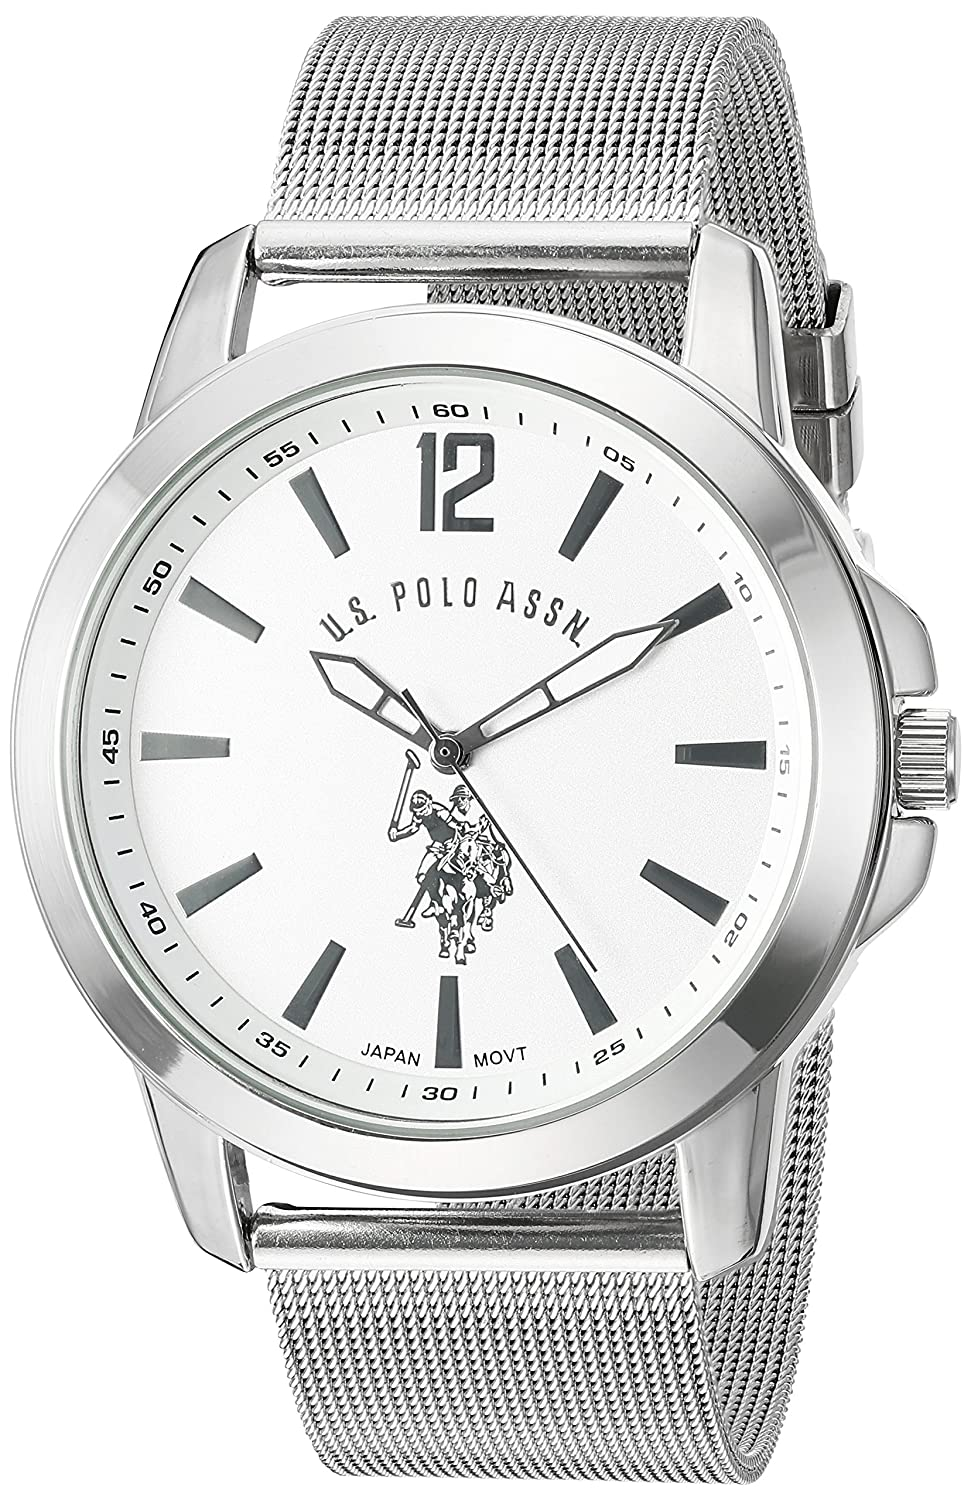 Amazon.com: U.S. Polo Assn. Classic Mens USC80375 Analog Display Analog Quartz Silver Watch: Watches